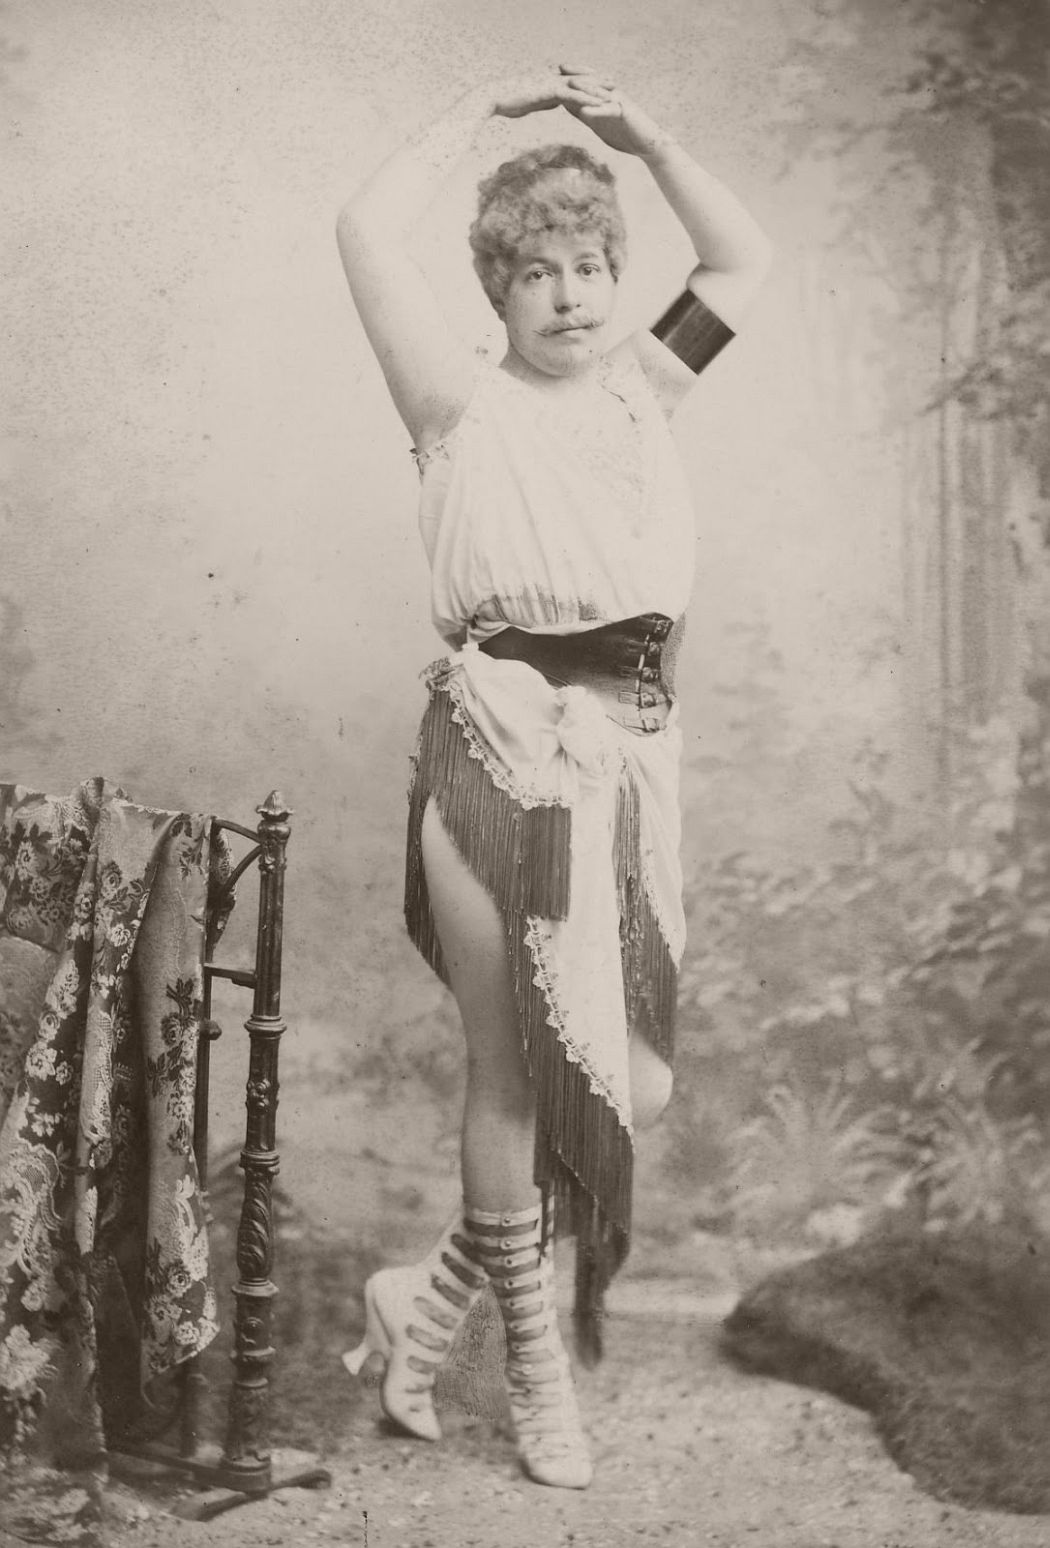 Man standing with arms joined above head, wearing a corset type belt, tasselled skirt and ladies calf length stud-fastening boots. He has his hands raised above his head on a ballet style pose.